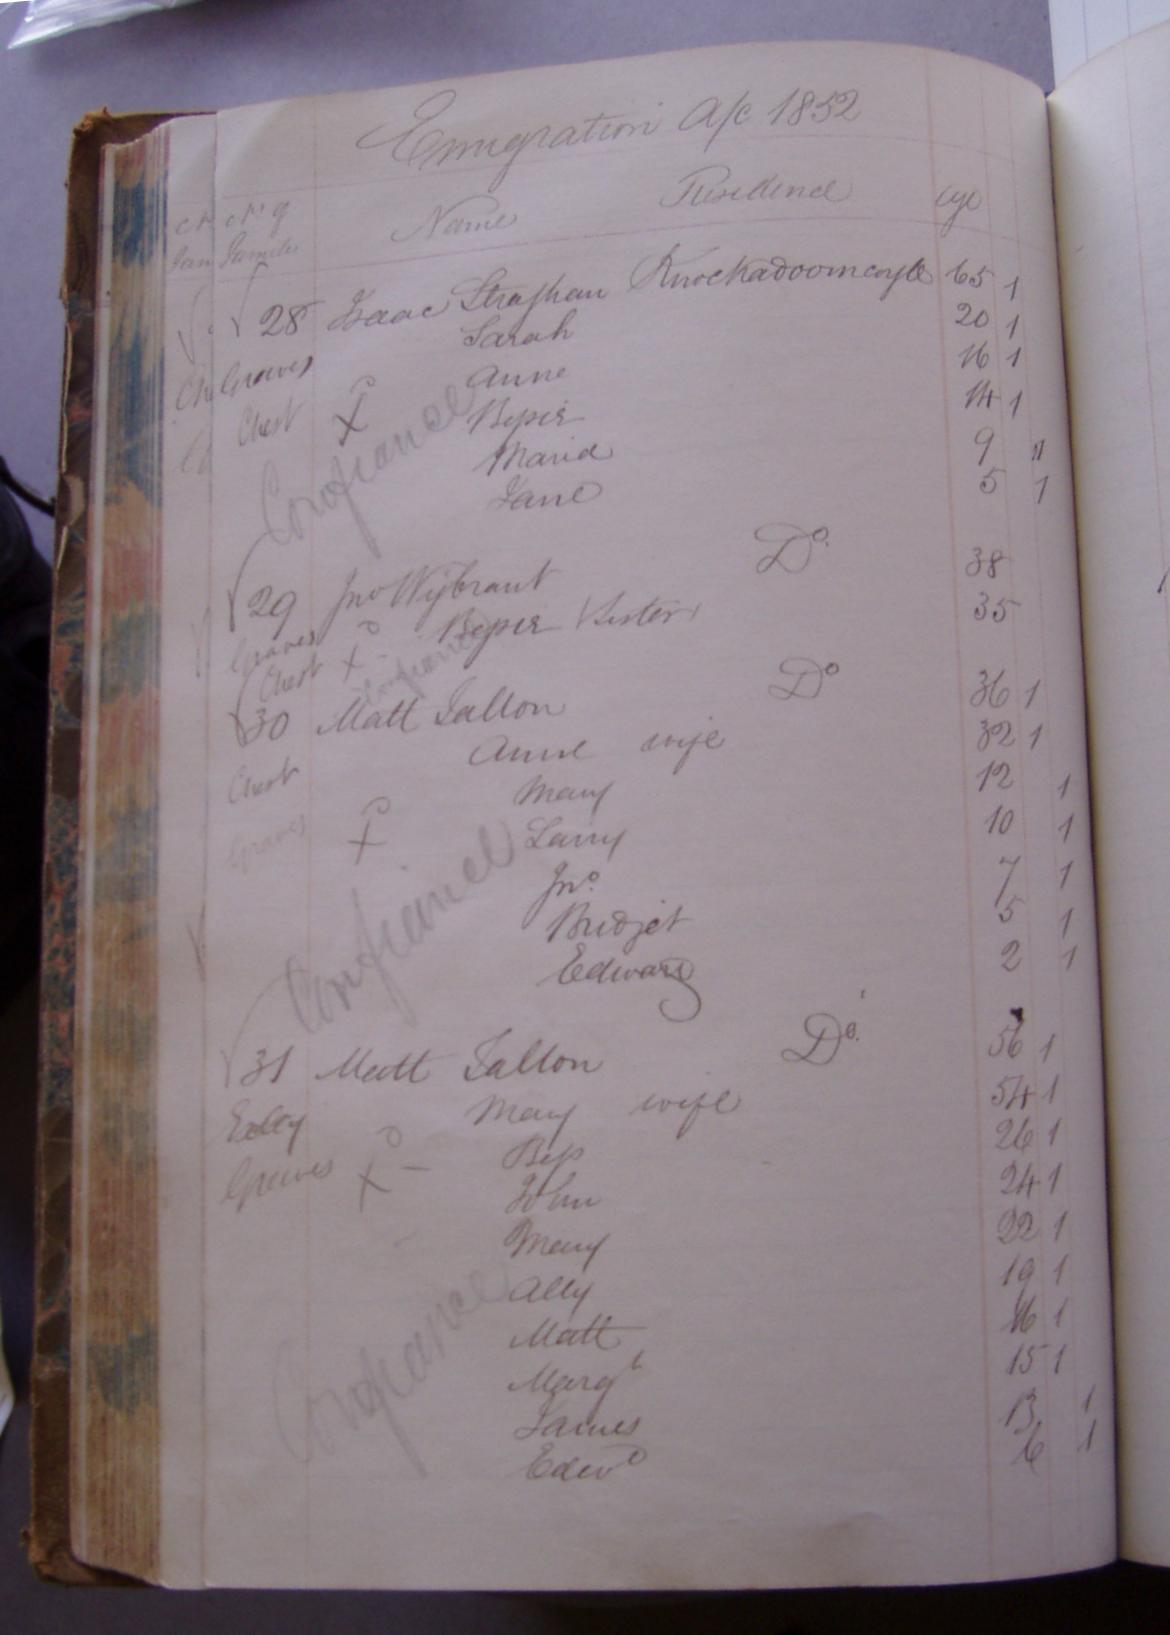 Matthew Tallon listed in 1852 emigration book - Ireland to Canada (Ottawa)